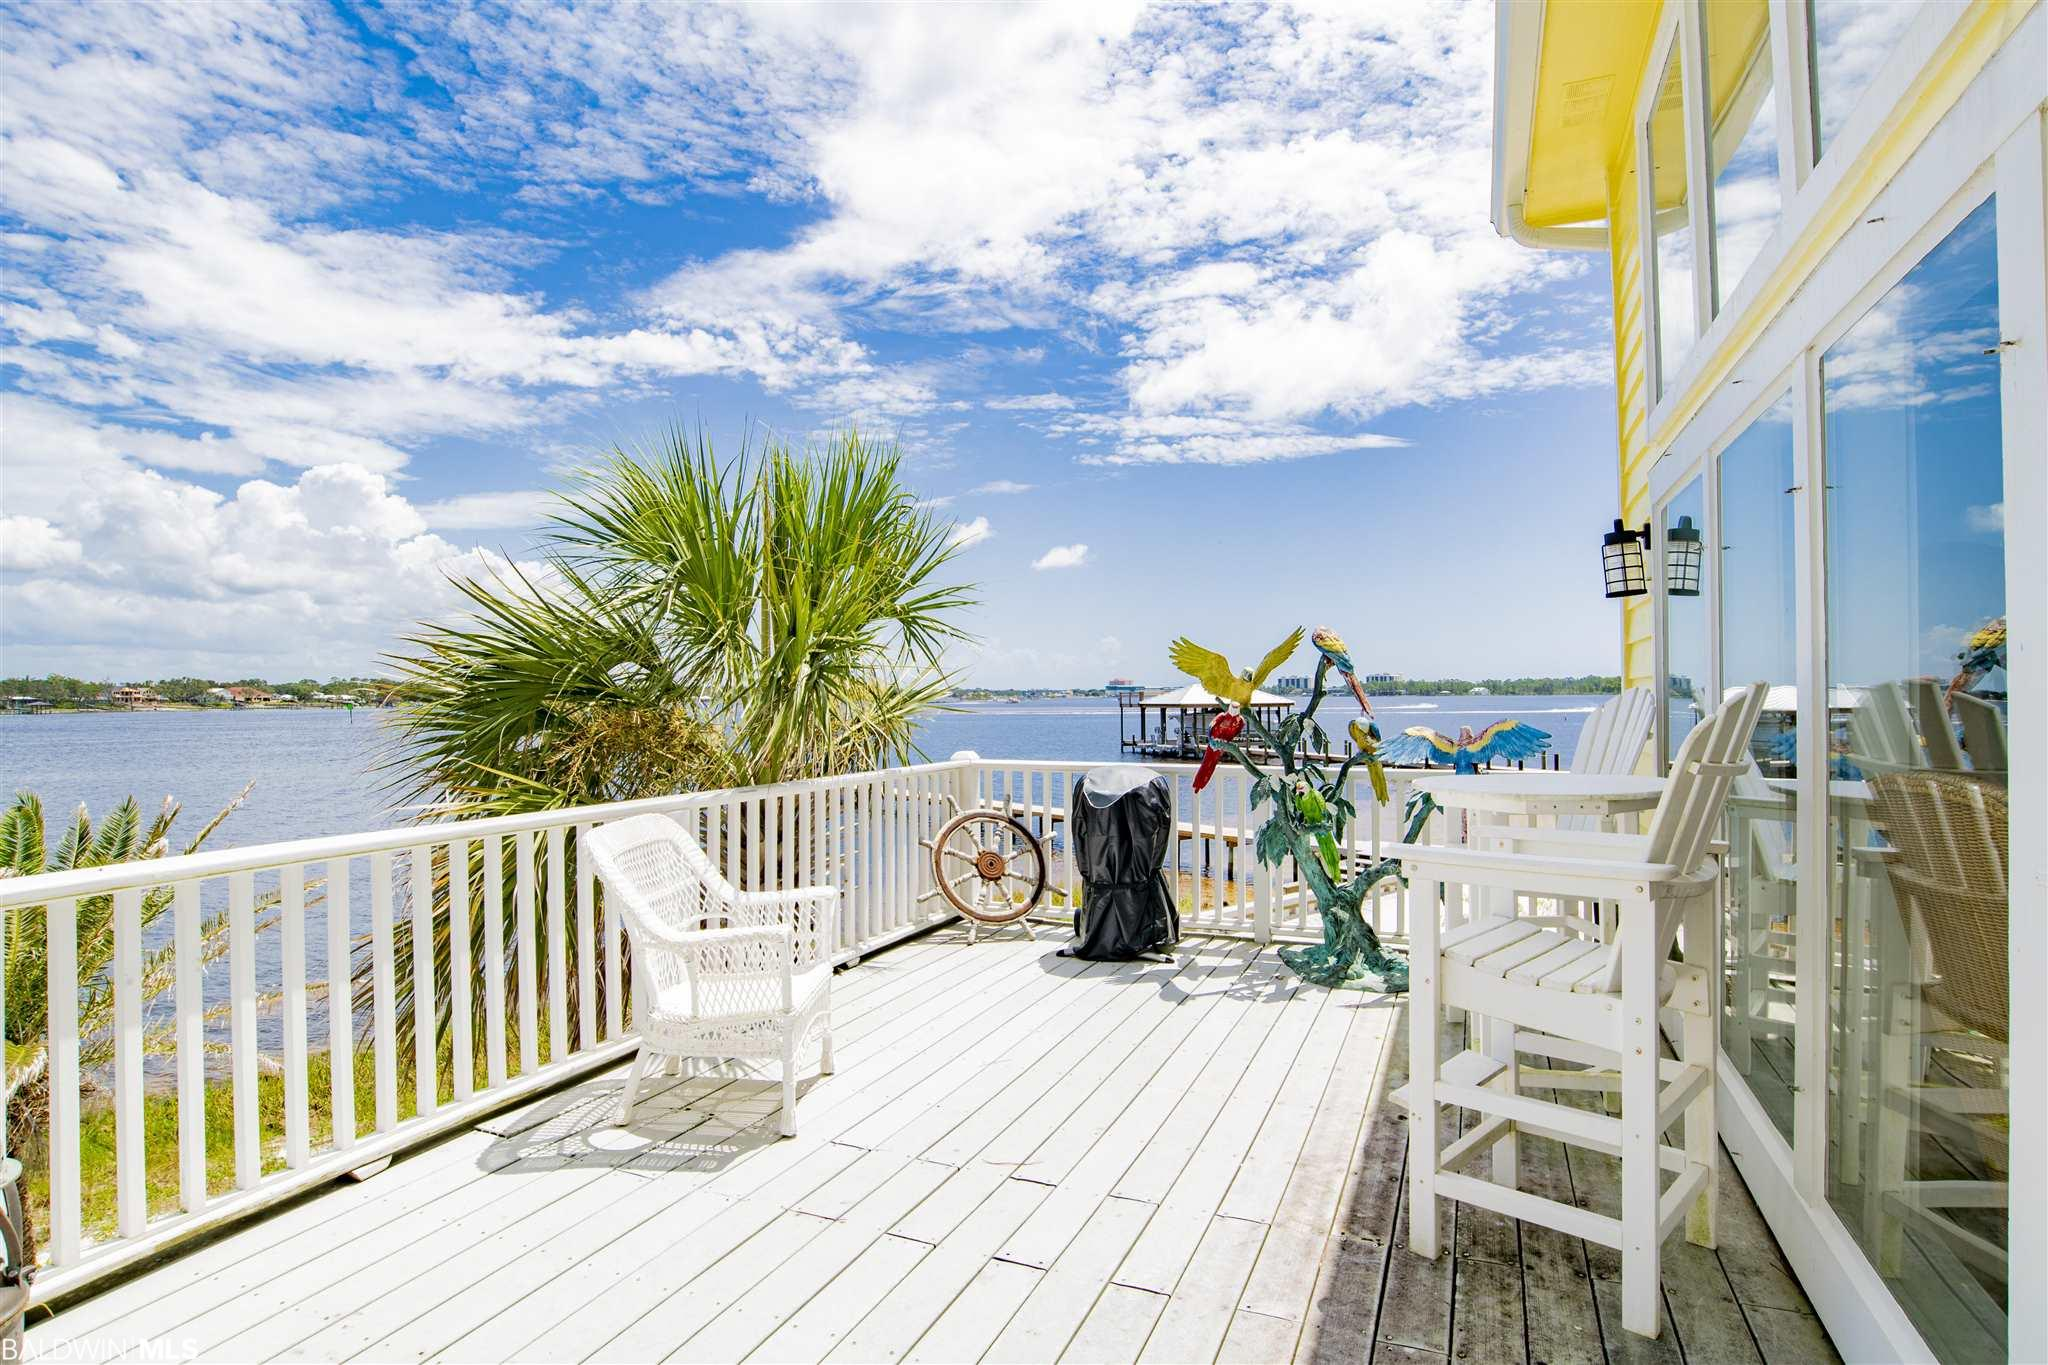 Most properties on Ono Island are locations; this property is a take-your-breath-away destination. It's such a lovely thing to experience the wide open panoramic views of Bayou St. John and the Intracoastal Waterway, magnificent sunrises and sunsets and white sandy beaches from this indoor/outdoor abundantly charming Caribbean/Key West style cottage on one lot and undeveloped sanctuary with the second lot. This enchanting destination's natural beauty offers a perfect 214' of waterfront refuge and deep water dockage. Owner has inspired an outdoor oasis surrounded by Heritage Live Oak trees, covered and open patios, large picture windows overlooking the bay and ICW, a private master with sunrise/sunset screened porch. Highly sought after destination on a quiet cul de sac offering a sense of freedom. Truly a magical and forever place.